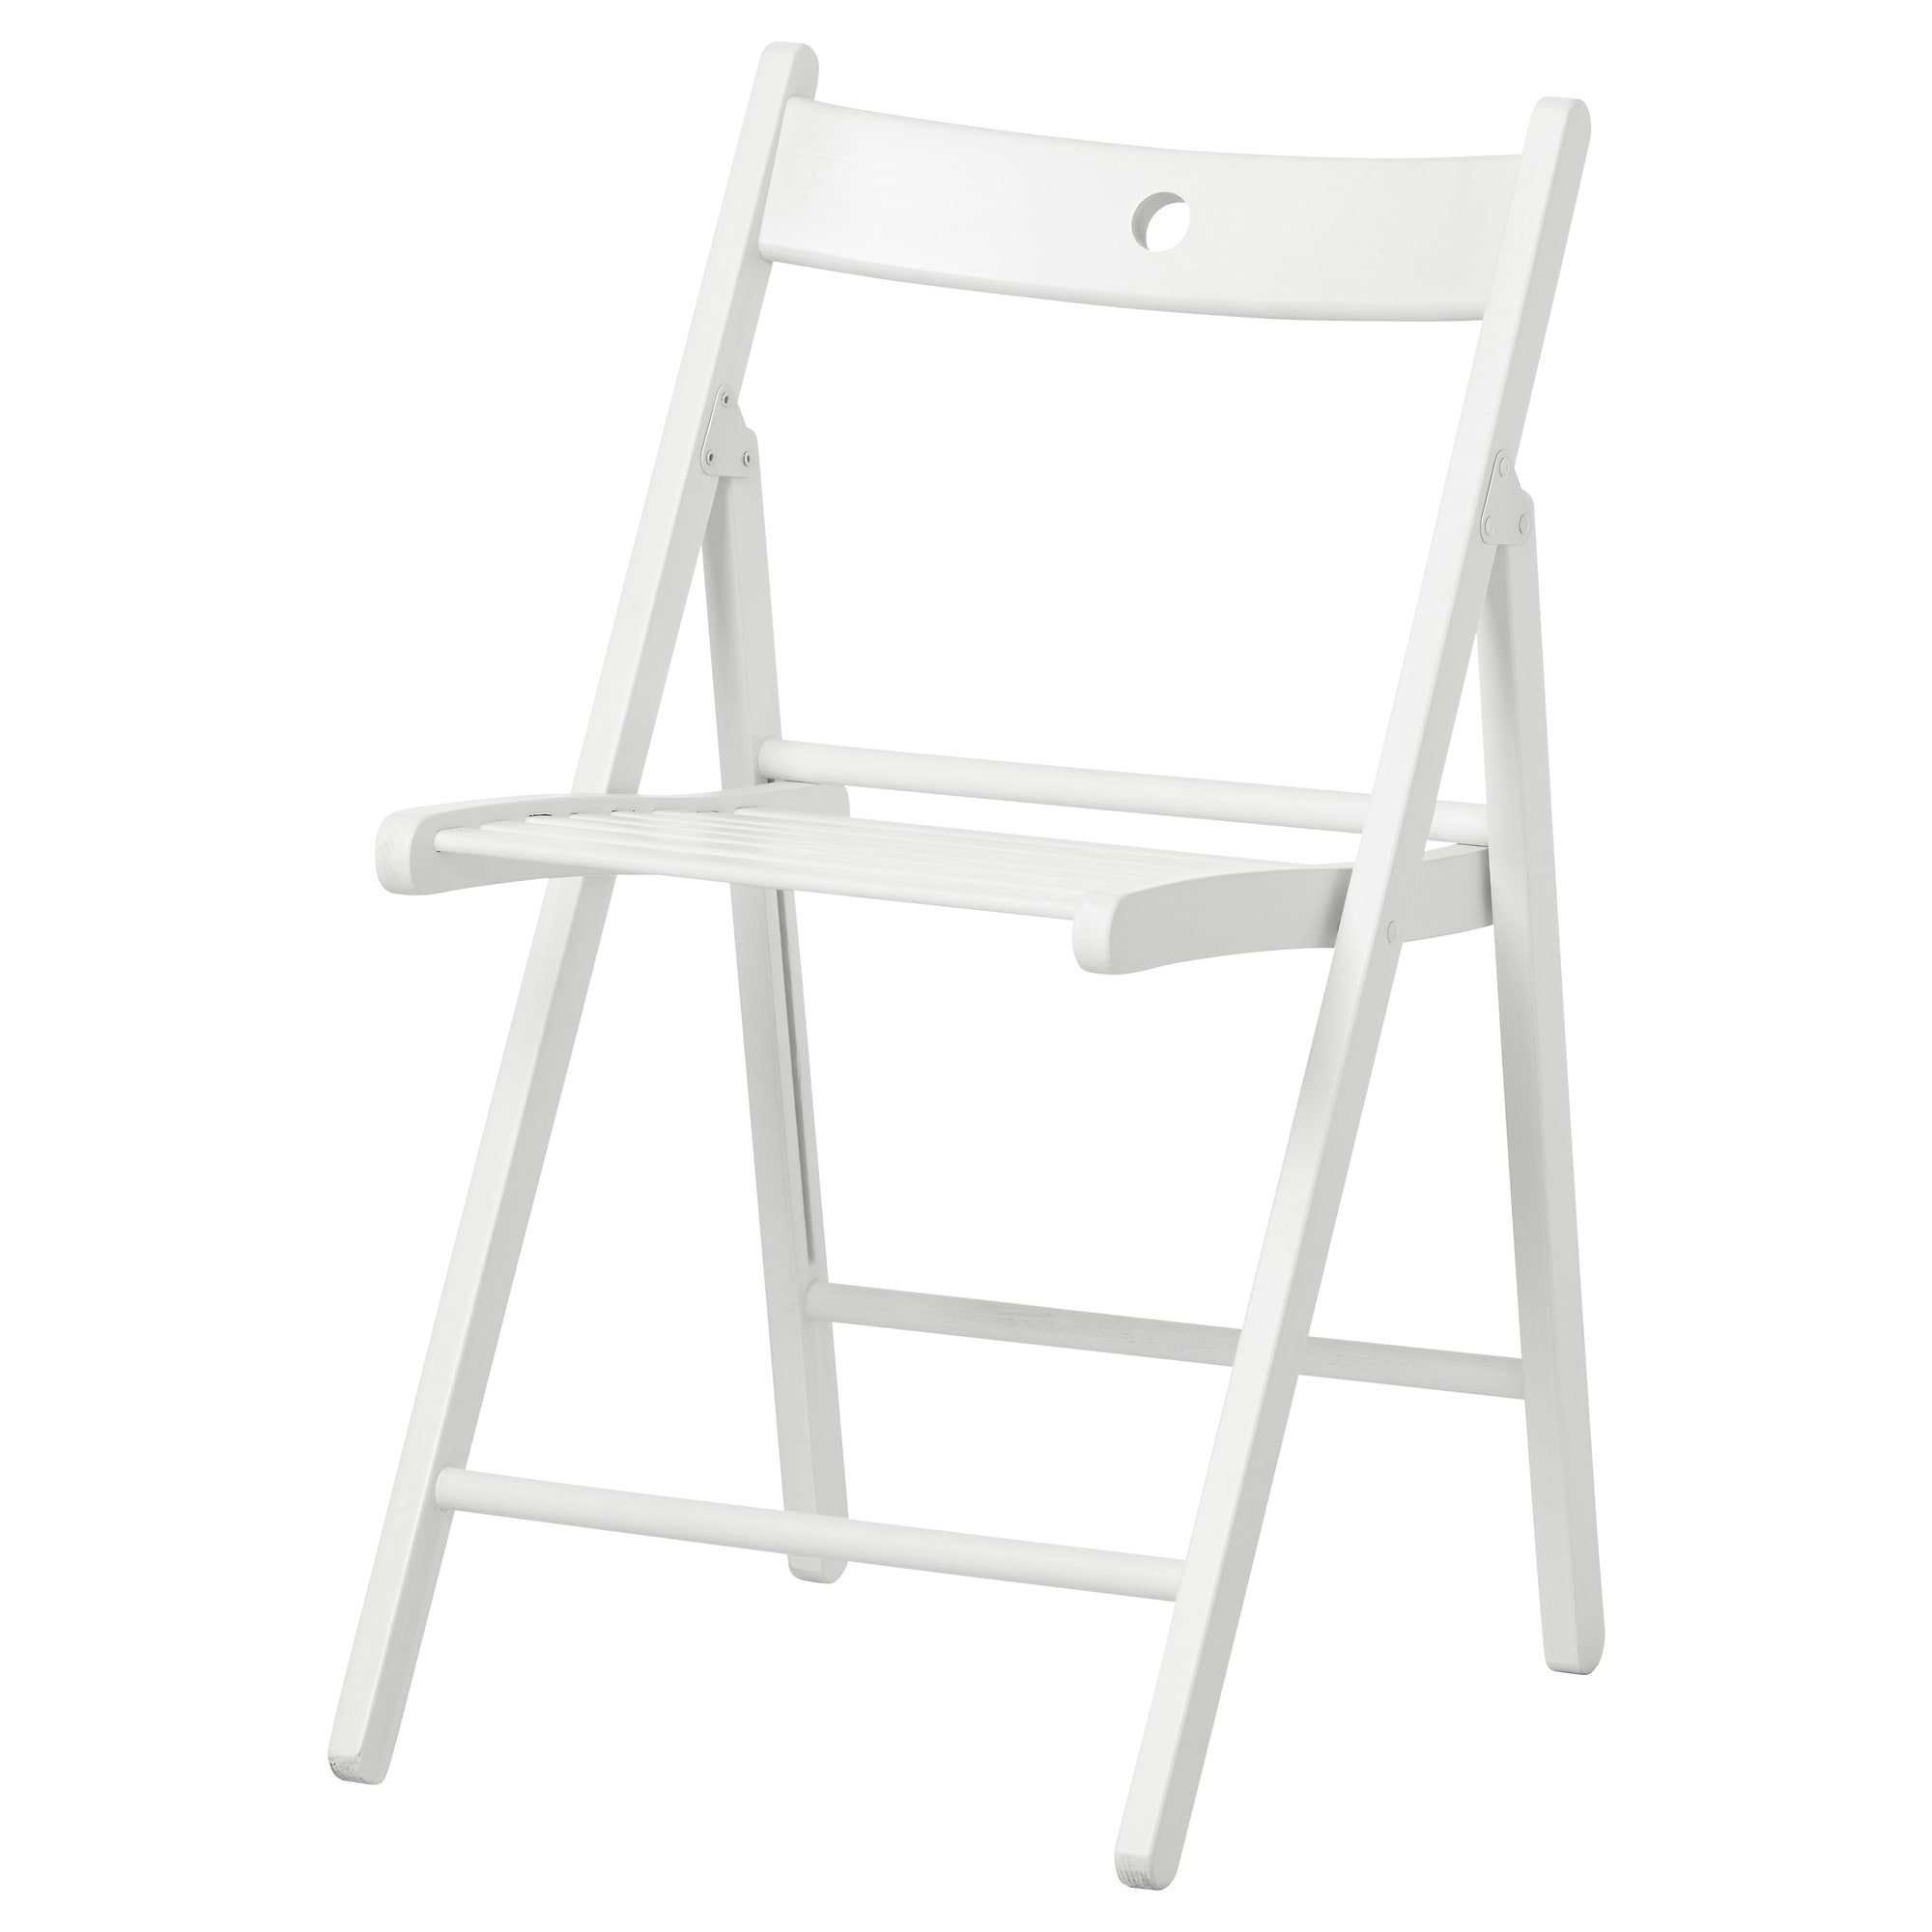 terje folding chair white tested for 220 lb width 17 38